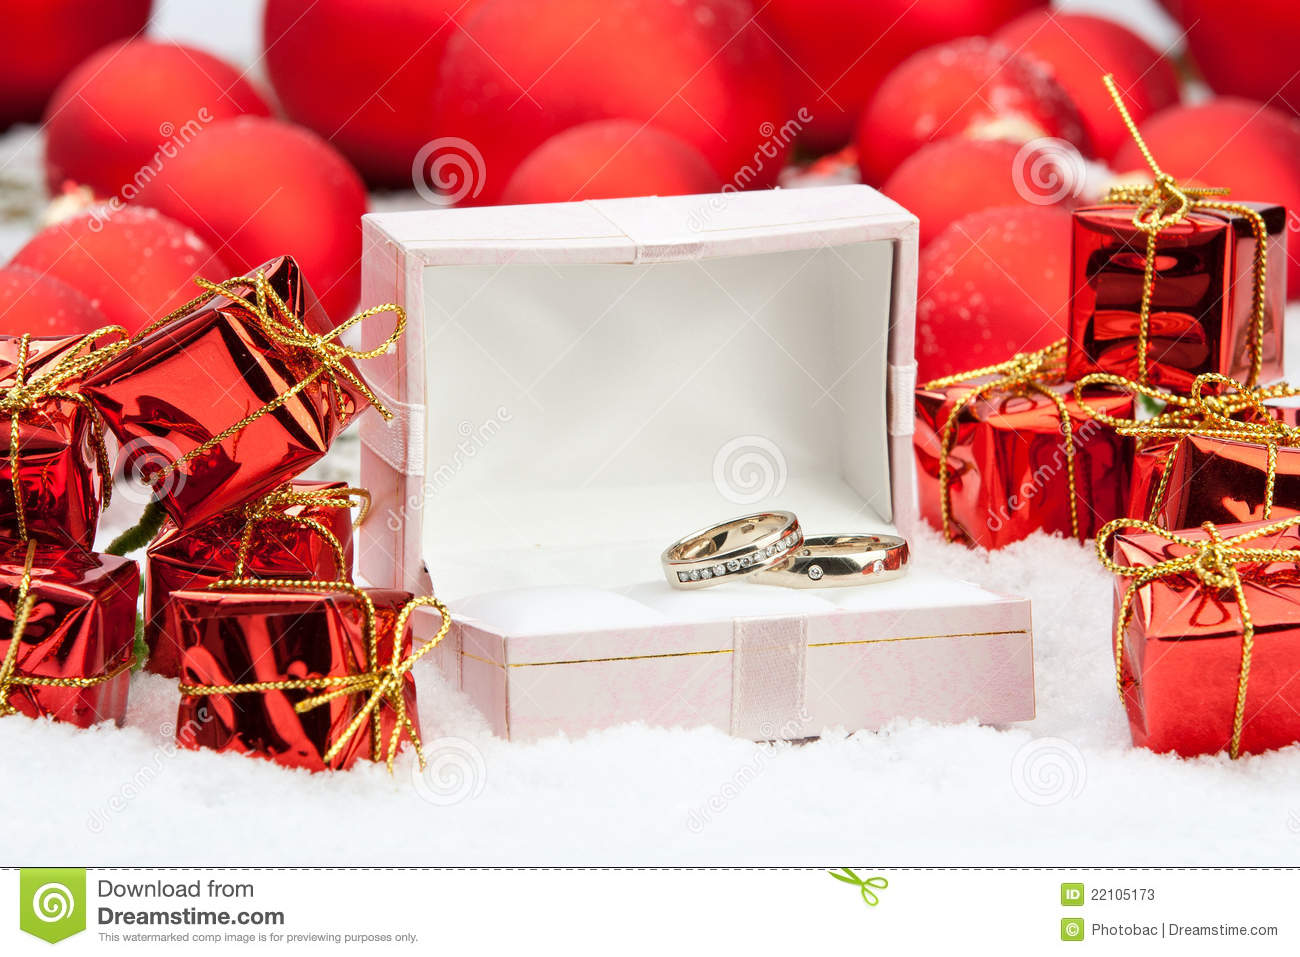 Wedding Rings Among Christmas Decorations Stock Photos